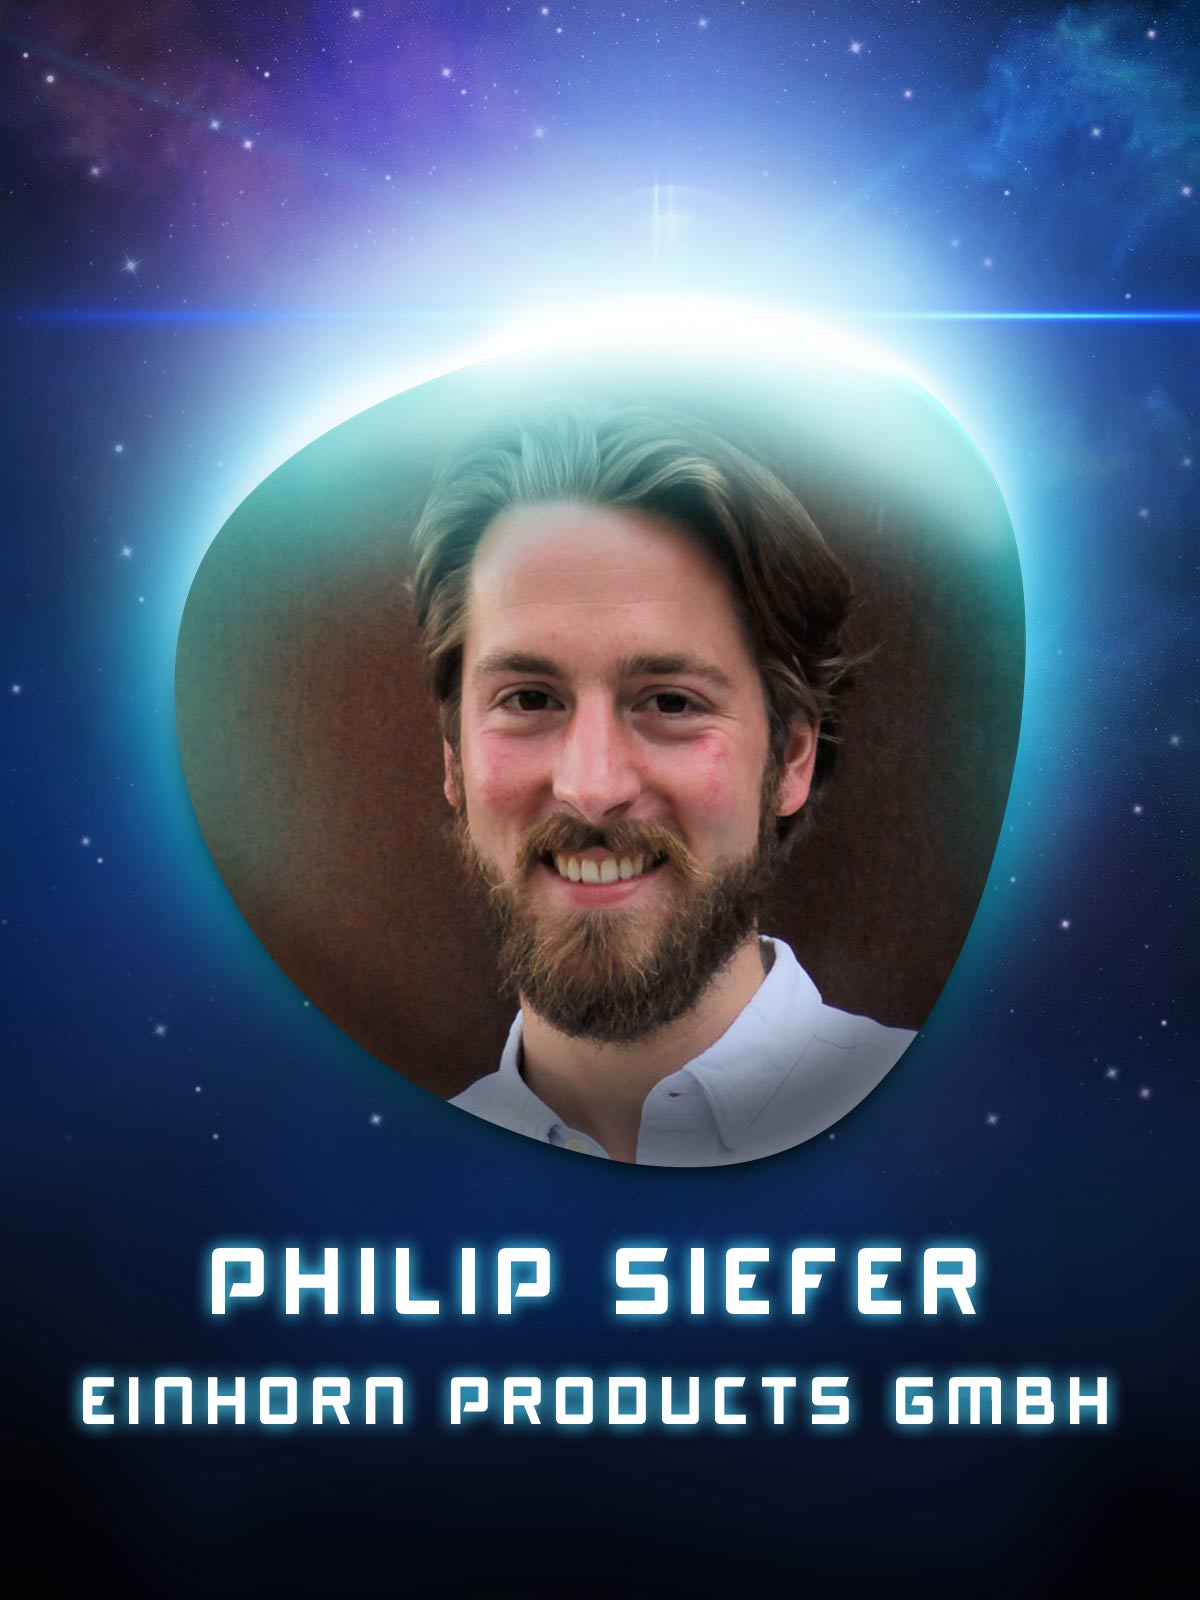 Philip Siefer OHK2017